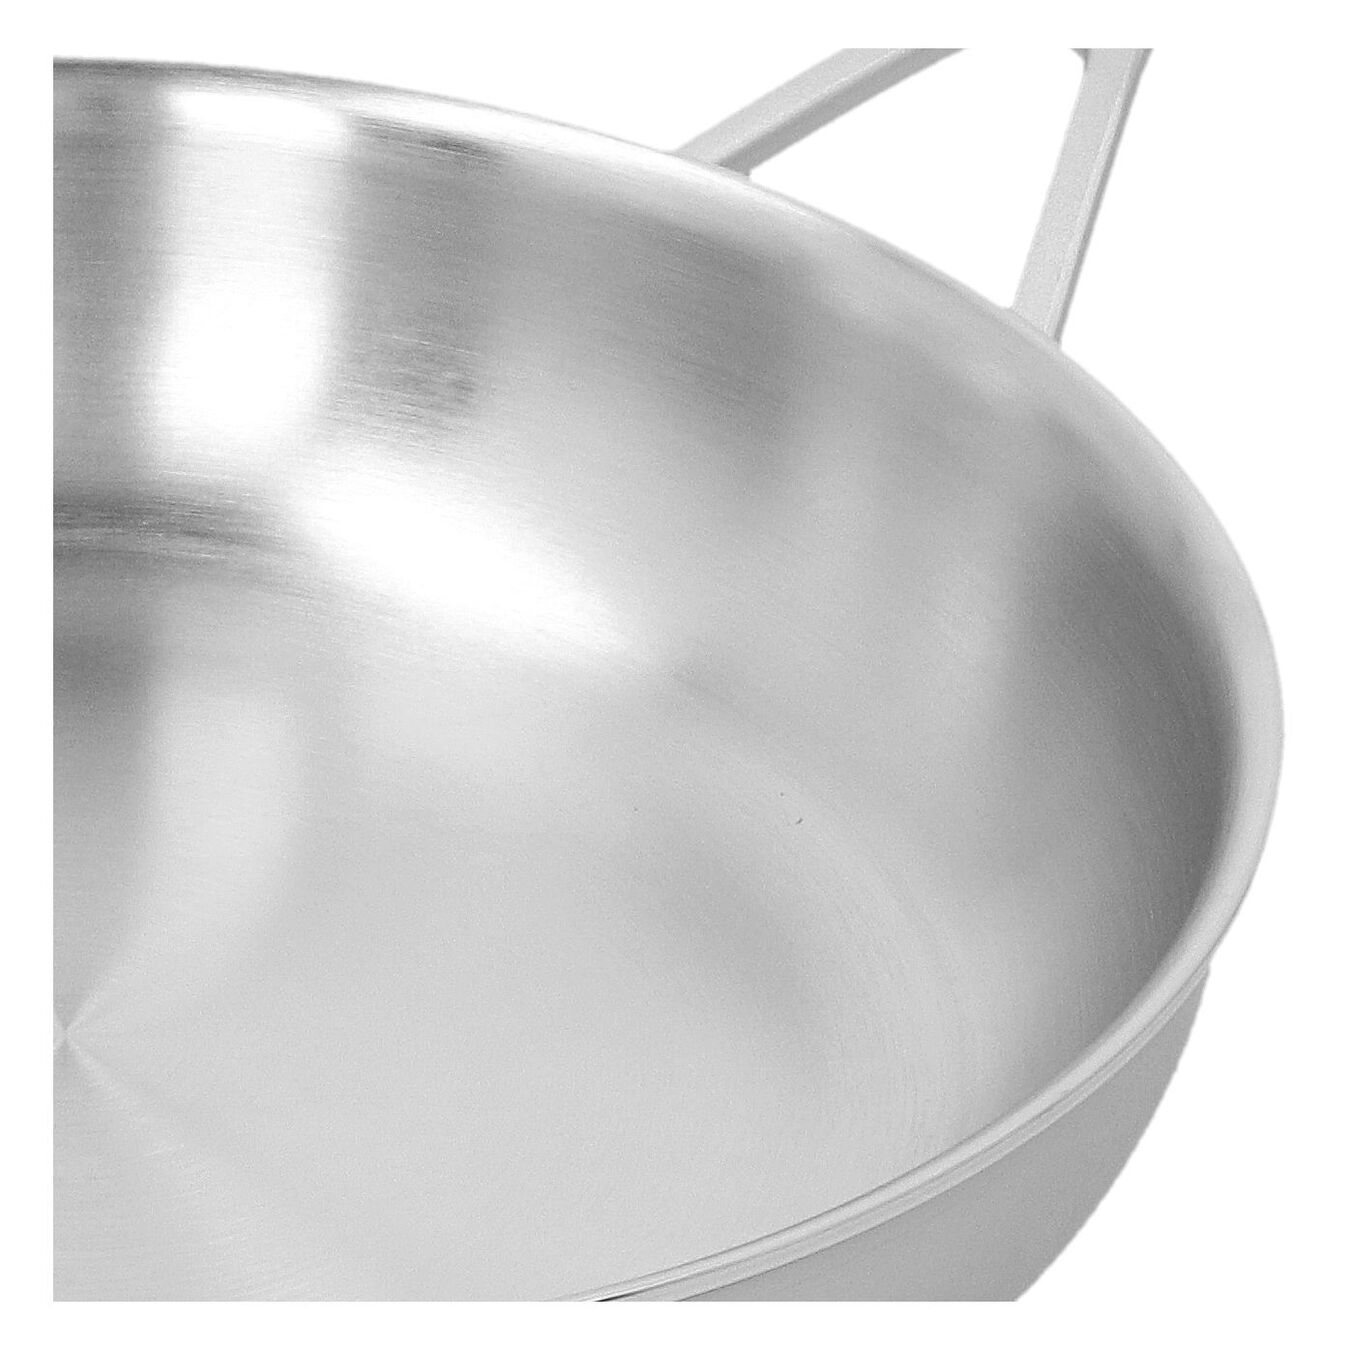 24 cm / 9.5 inch Frying pan,,large 5